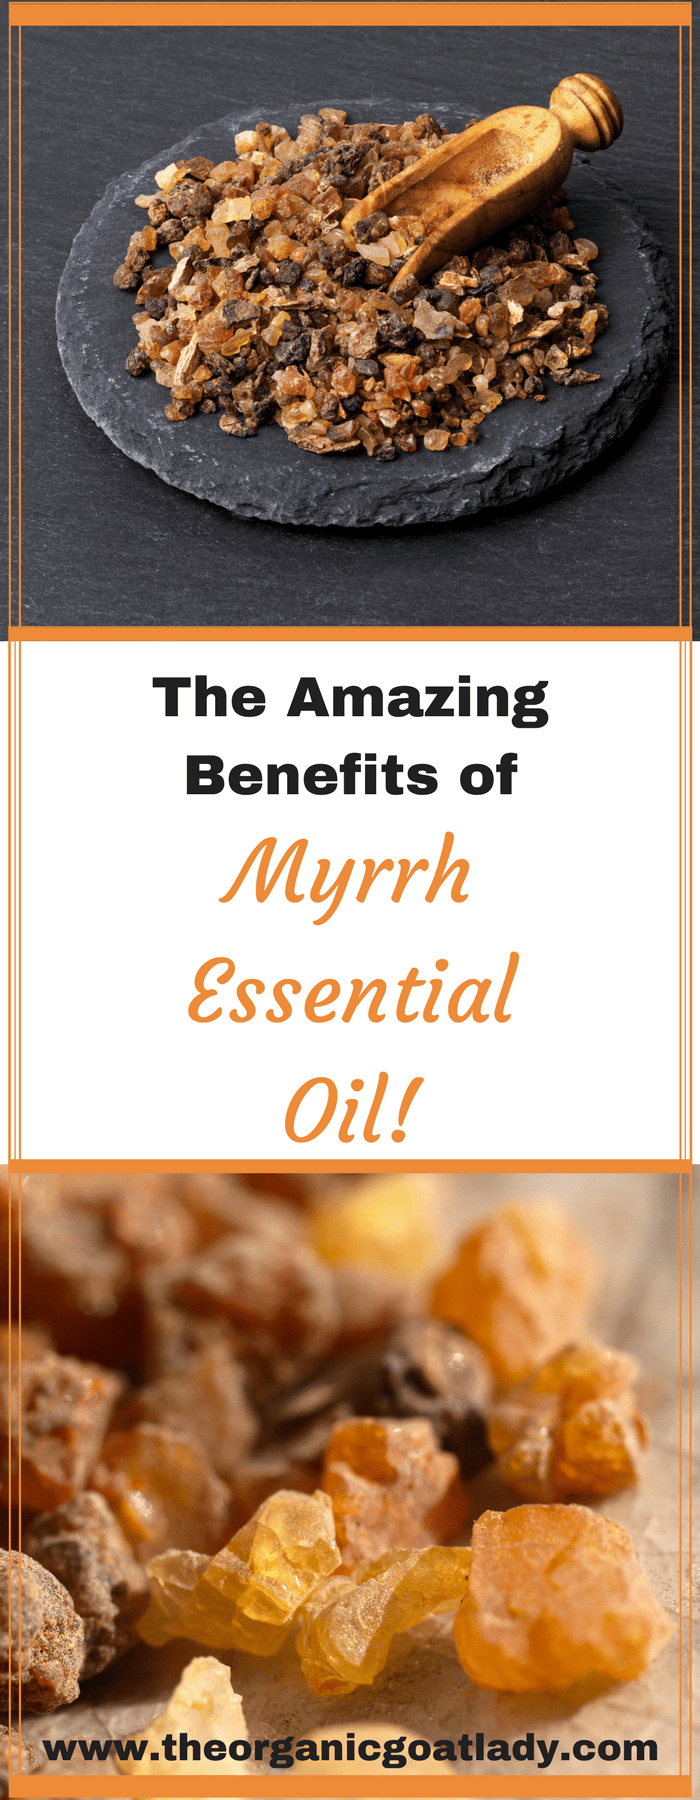 The Amazing Benefits of Myrrh Essential Oil!